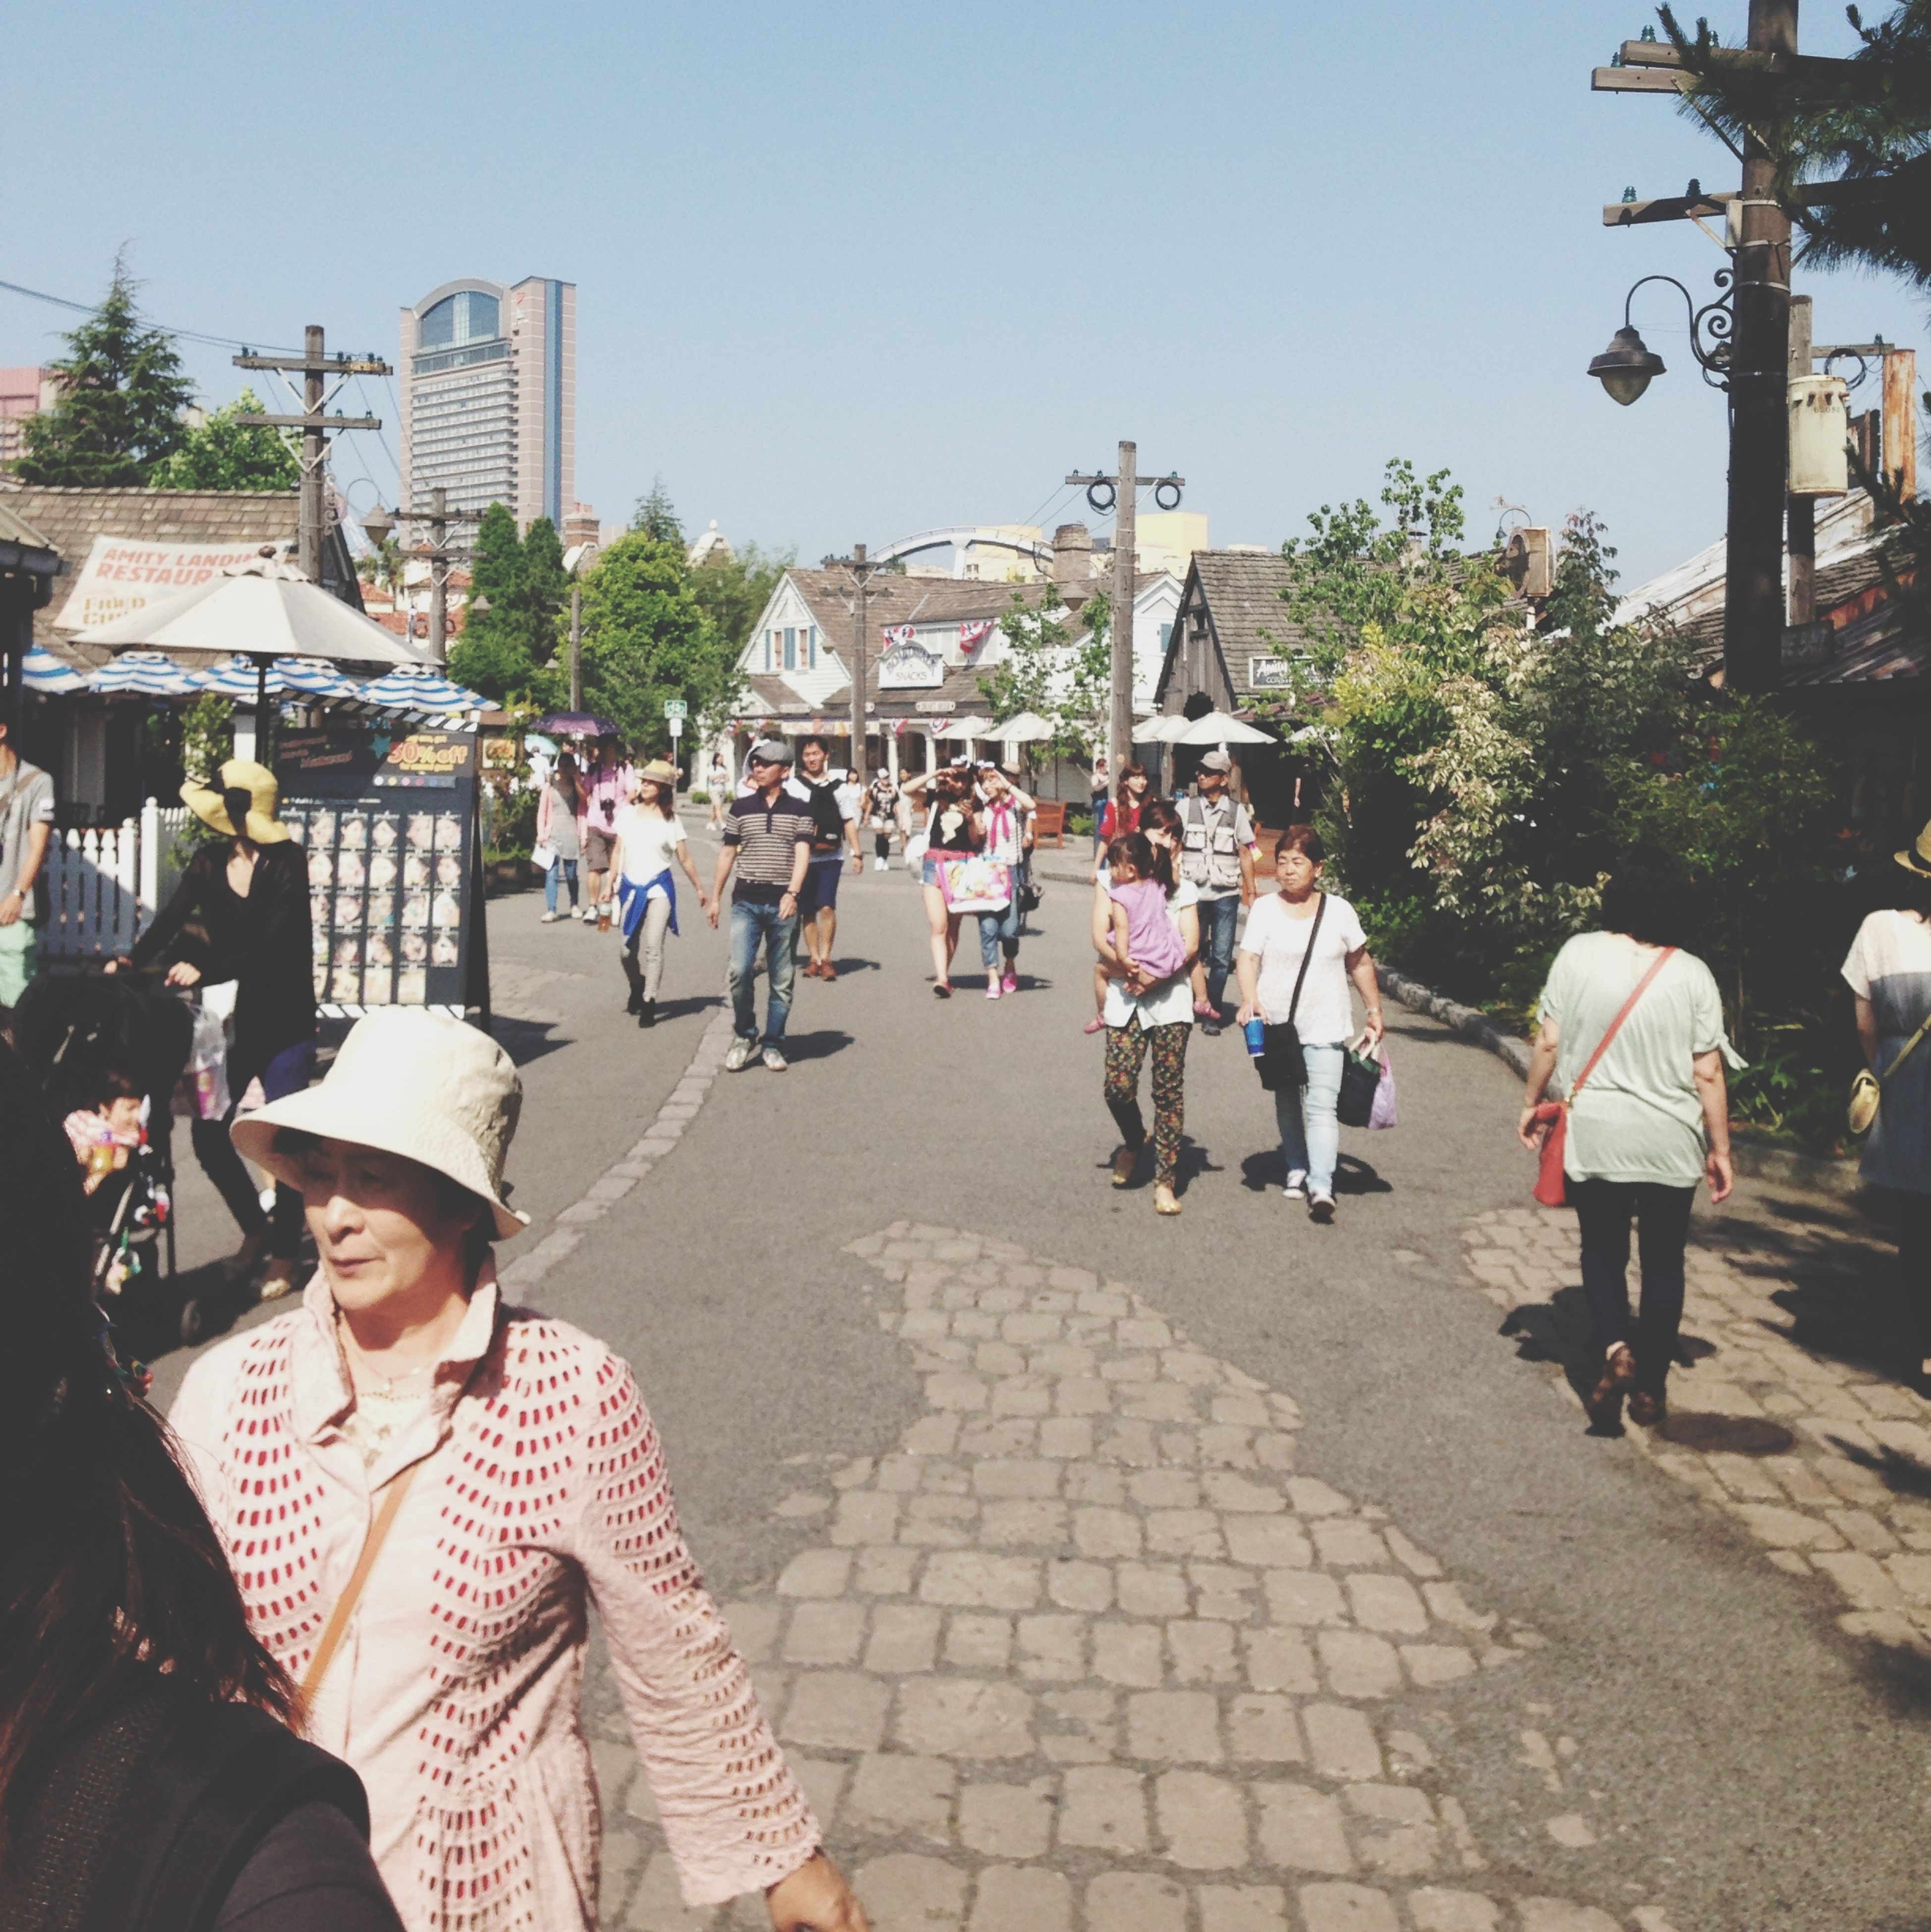 building exterior, architecture, built structure, lifestyles, large group of people, person, men, leisure activity, city, street, cobblestone, clear sky, walking, togetherness, casual clothing, city life, sunlight, mixed age range, outdoors